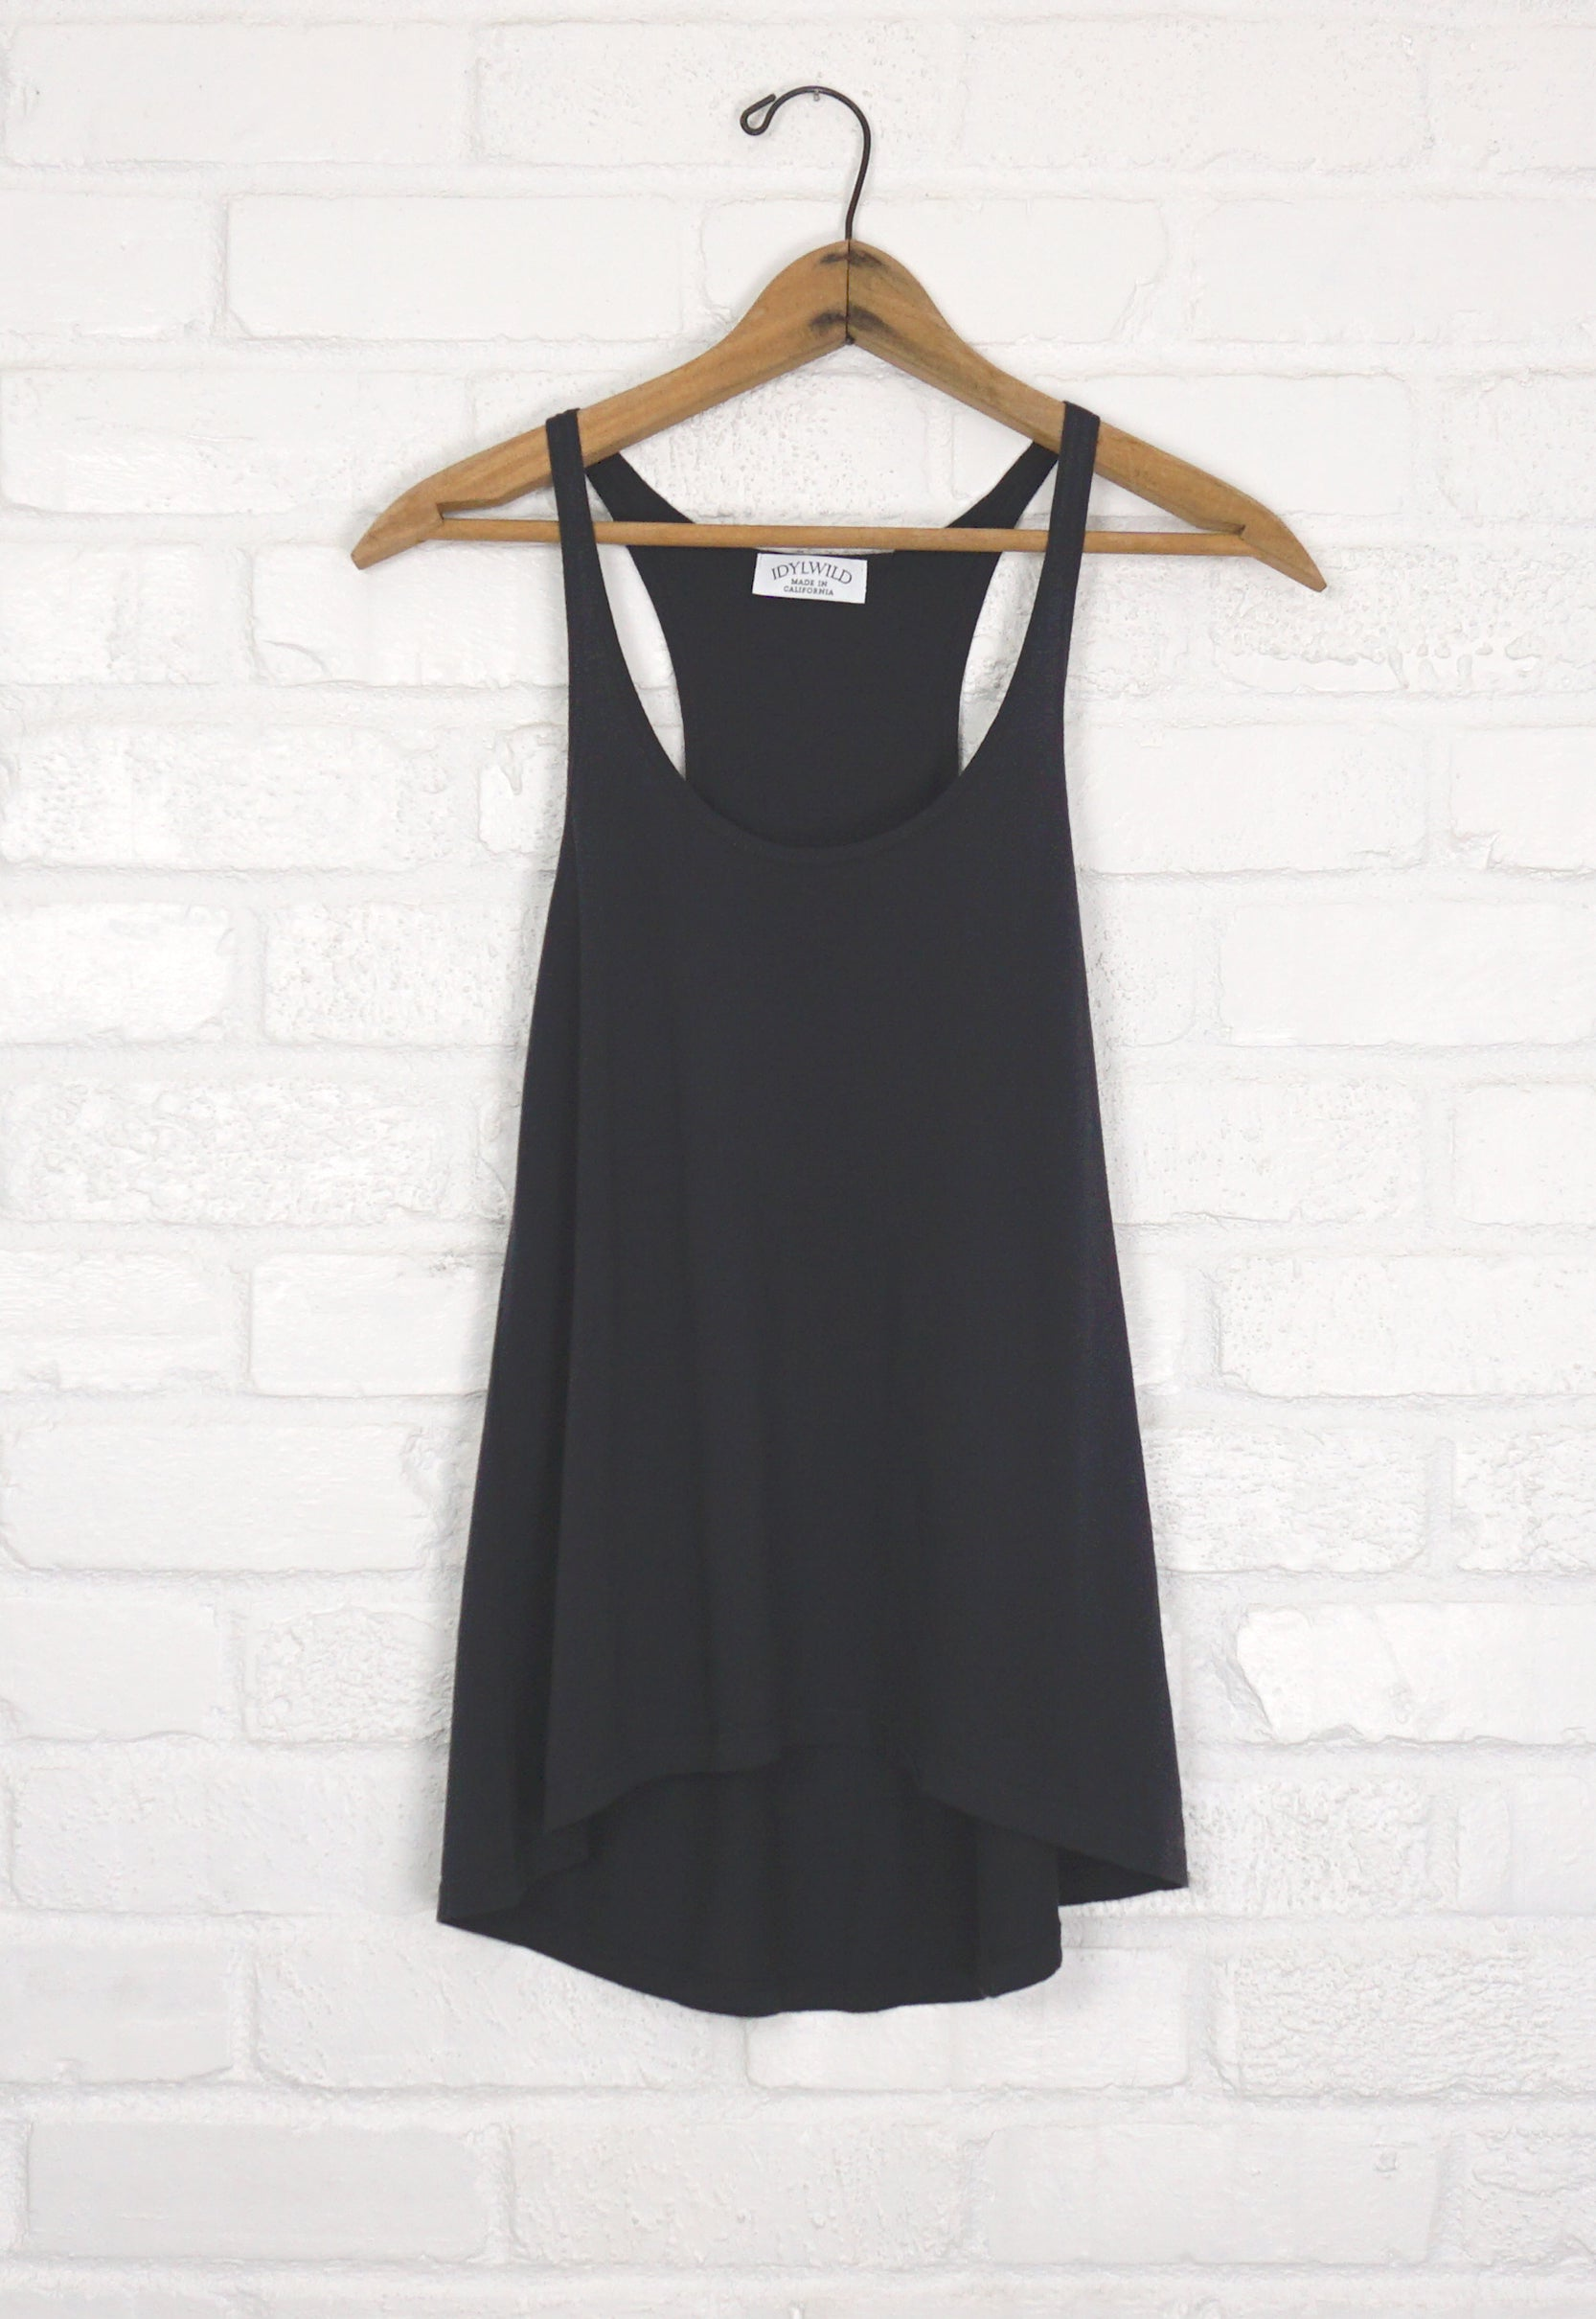 Idylwild A-Line Tank - Washed Black